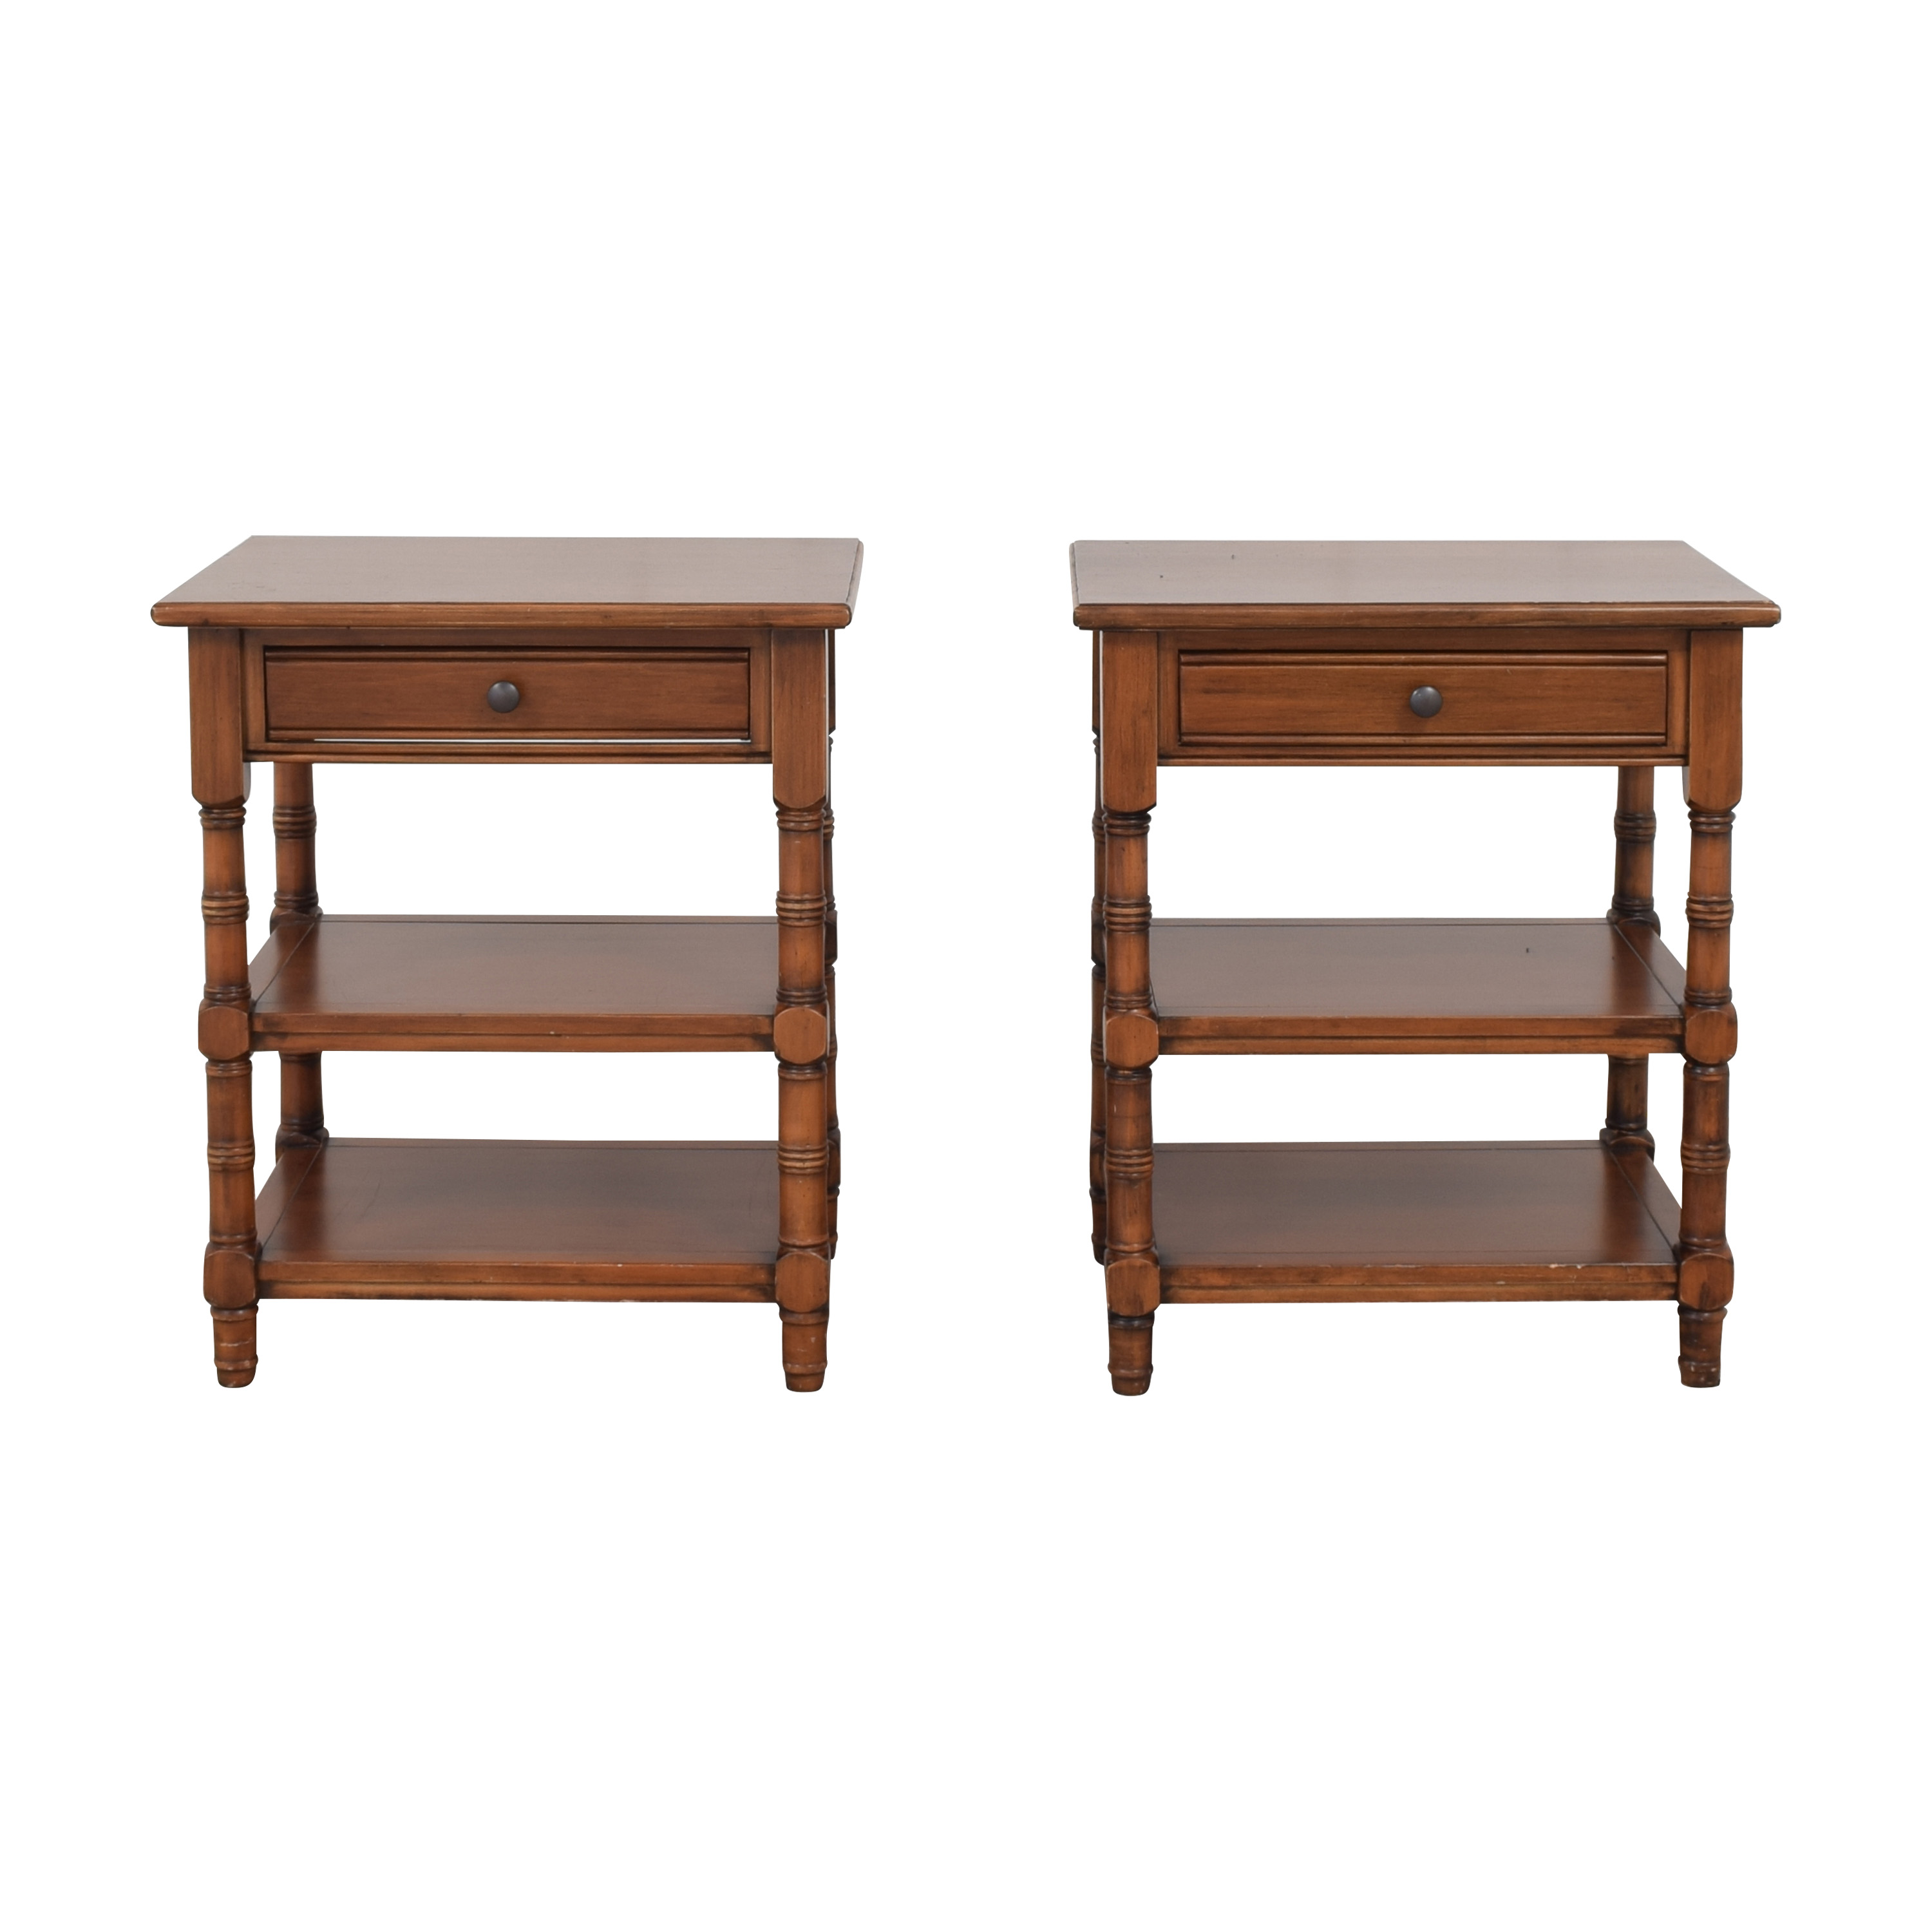 shop Country Willow Nightstands Country Willow